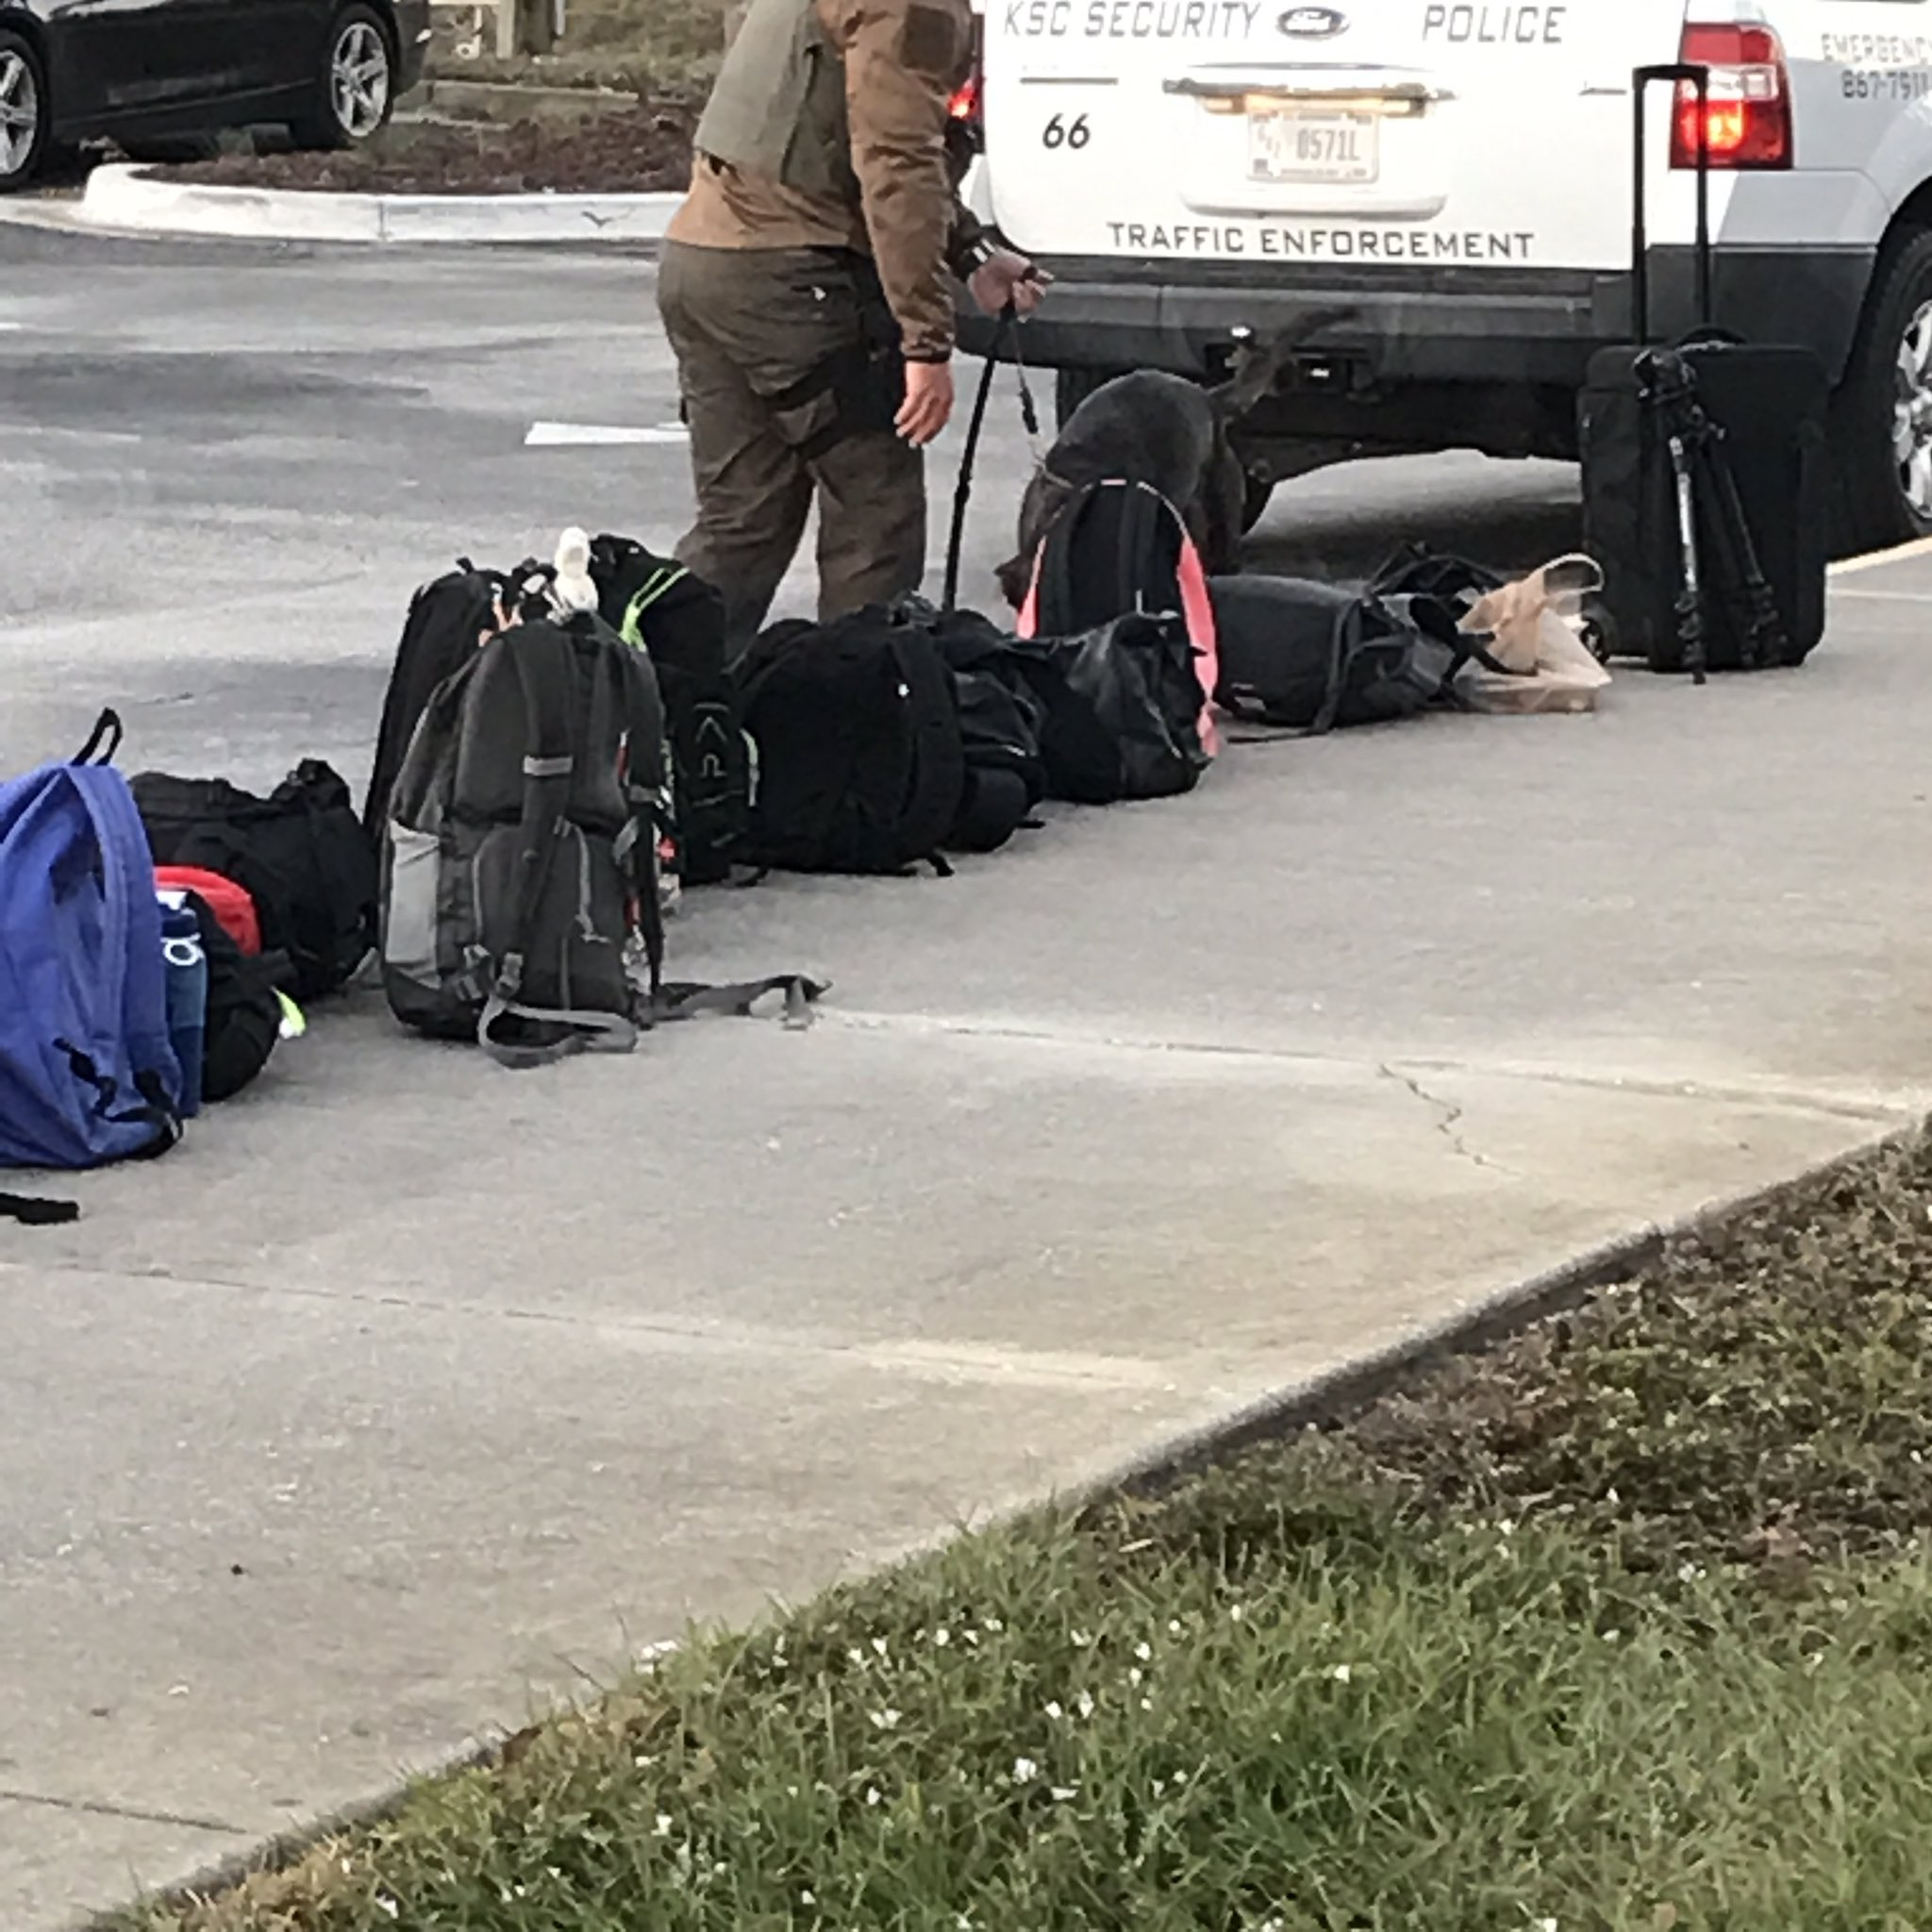 Hey LPS students, now a canine unit checks our bags before entering the complex #devilsChat https://t.co/29MaDEWBg8